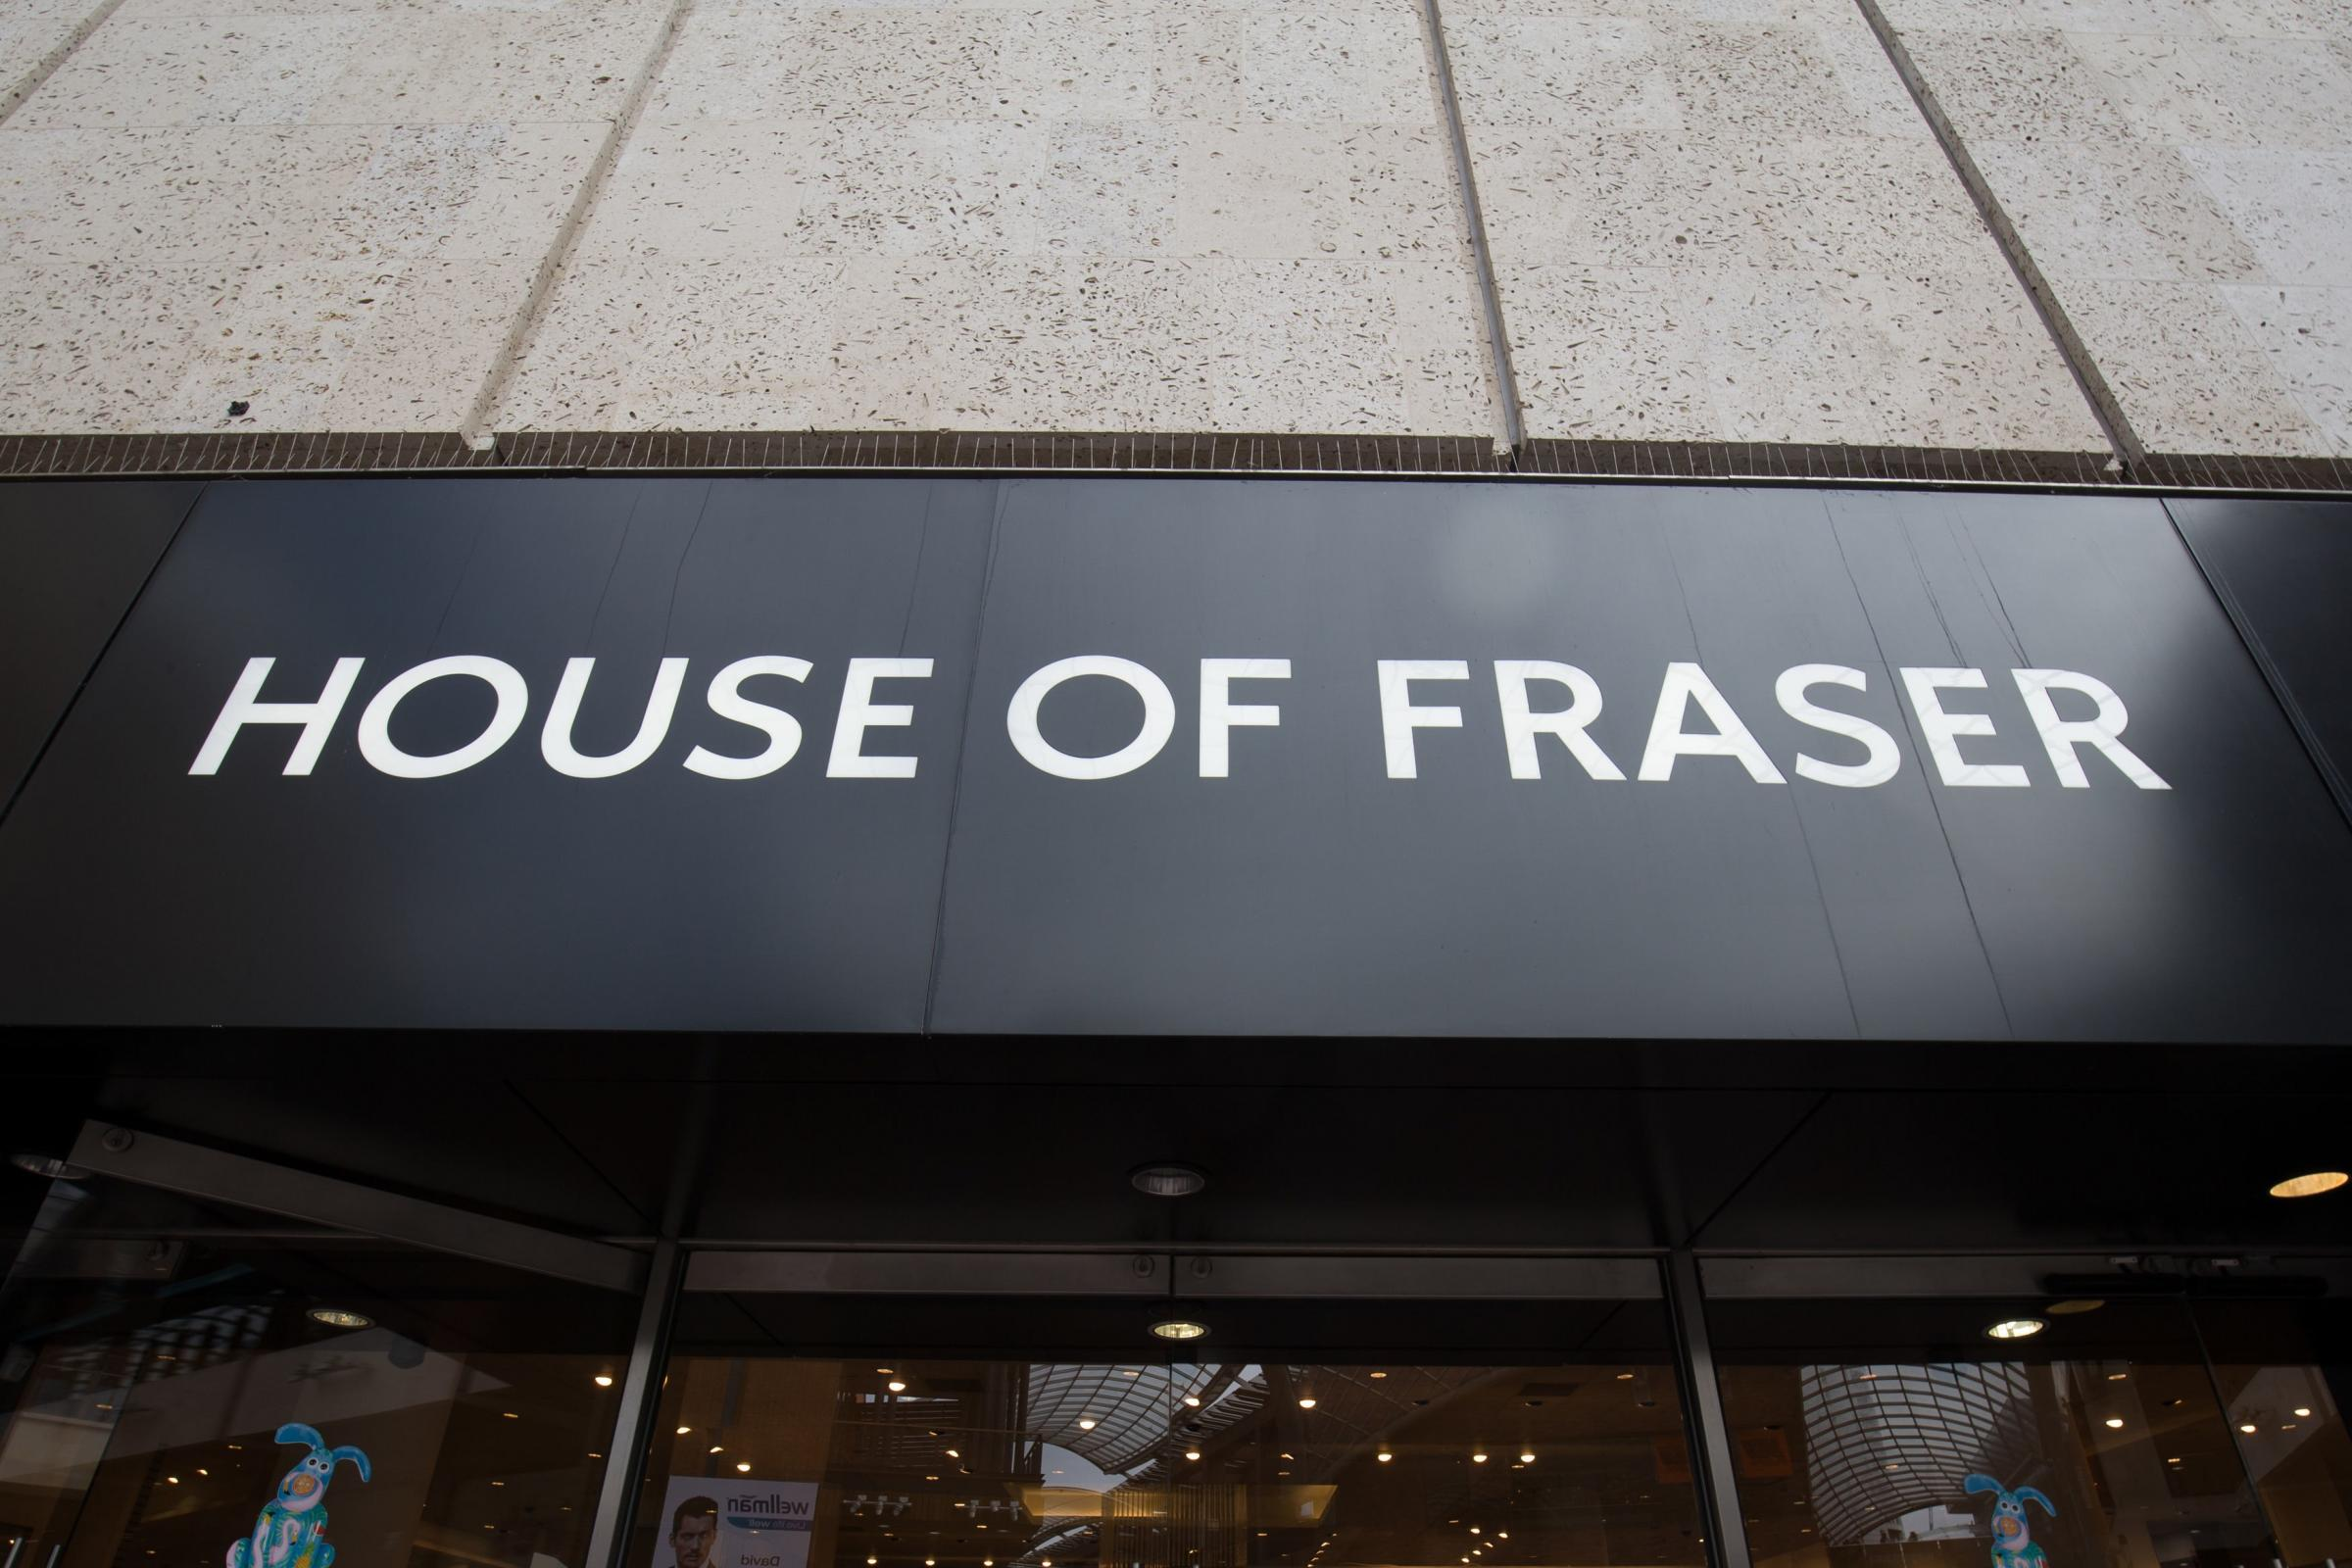 Plans to turn Altrincham's House of Fraser into flats